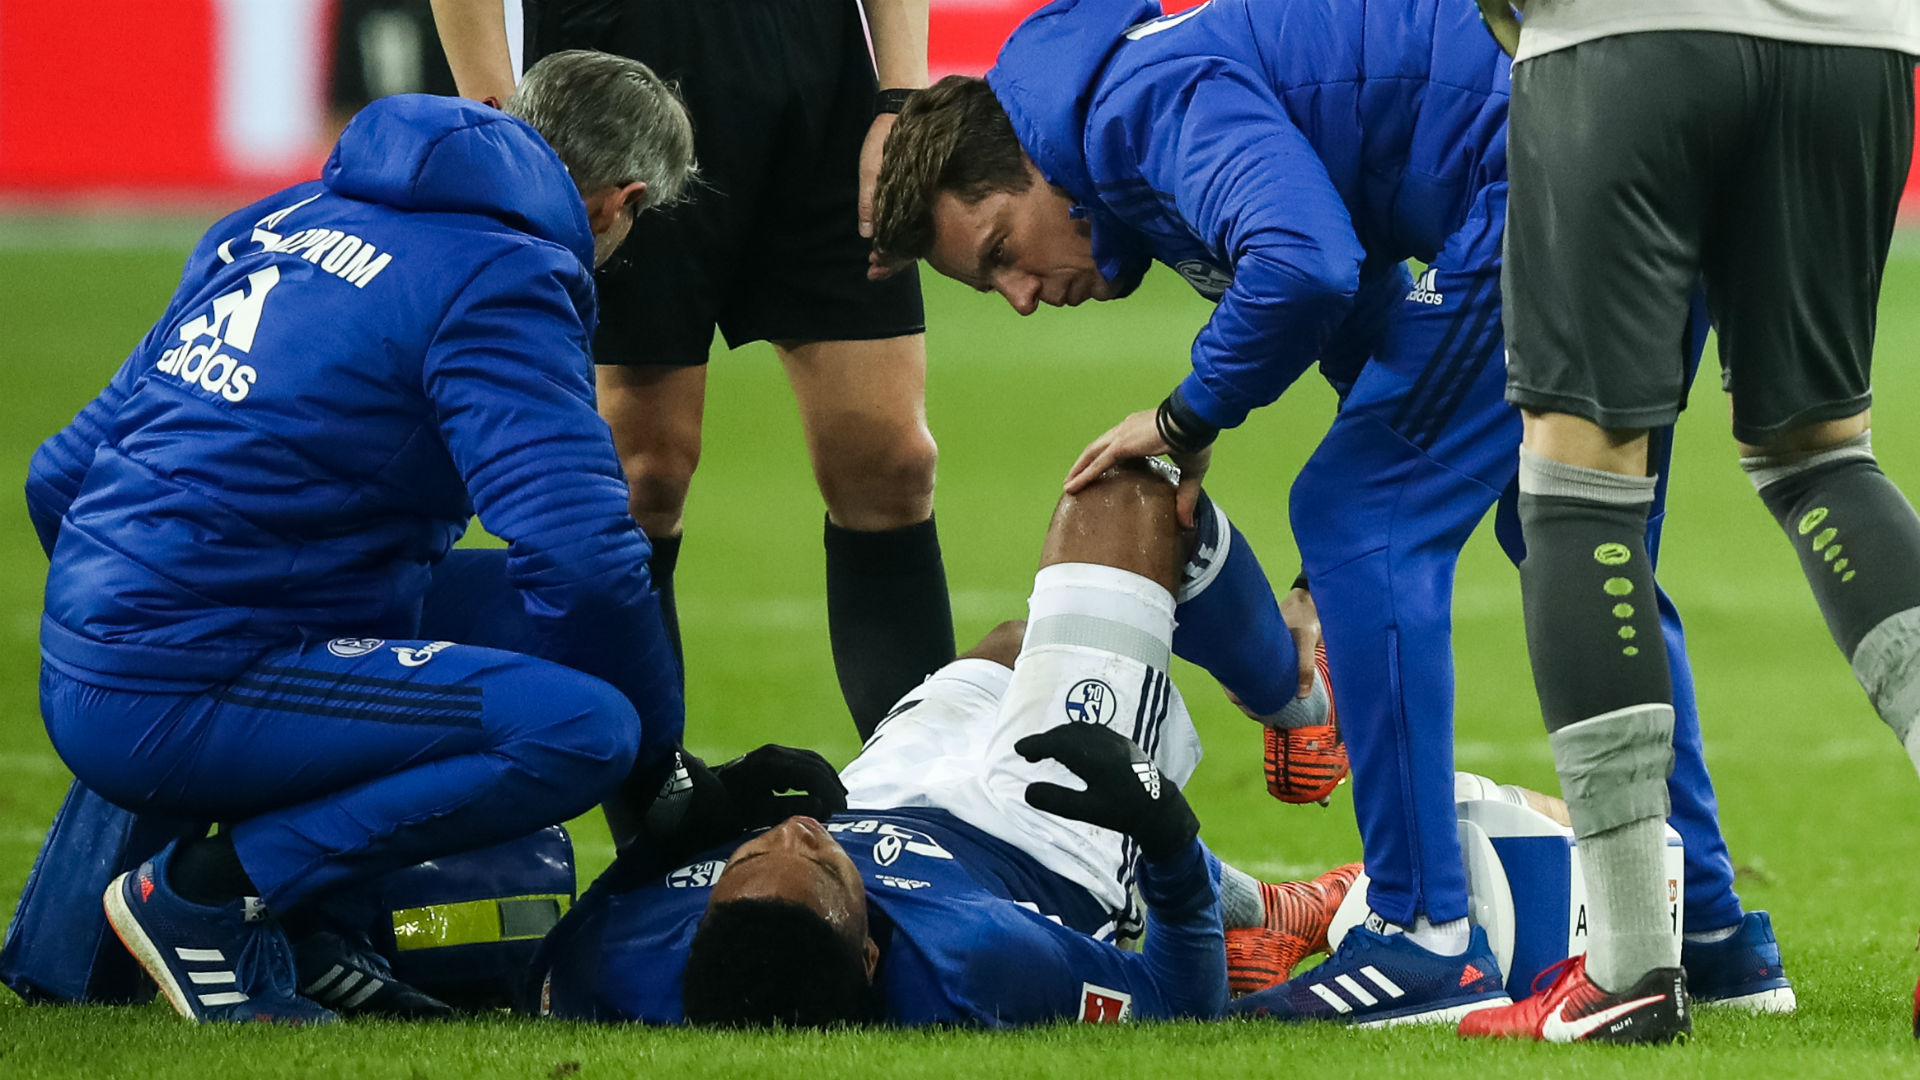 Schalke's Weston McKennie injured against Bayern Munich